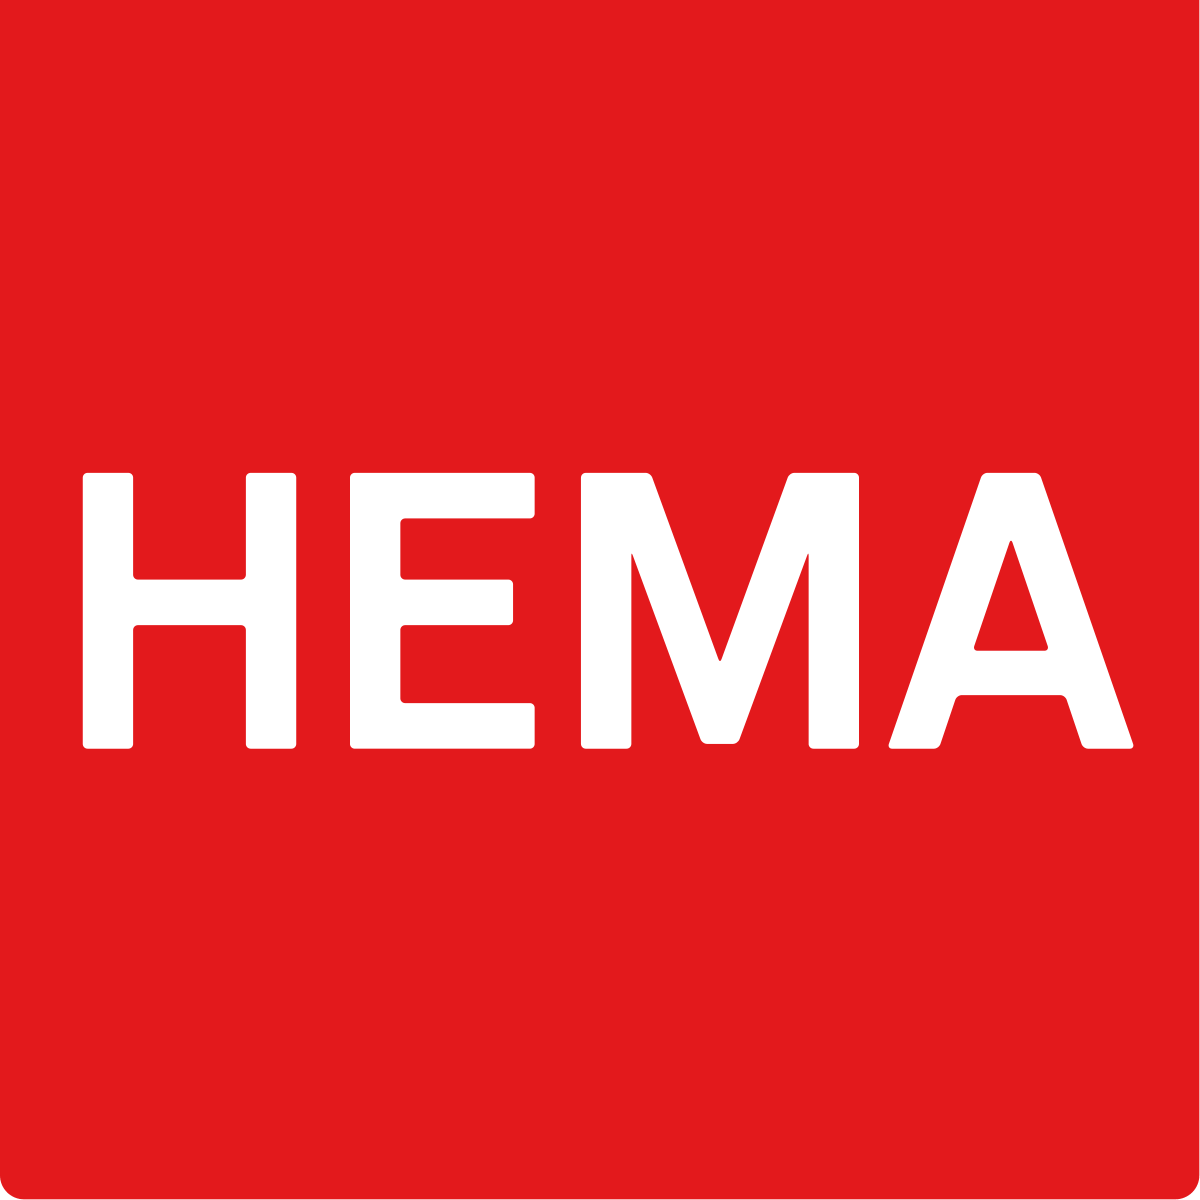 Visit Hema shop at Docks Bruxsel shopping centre today.